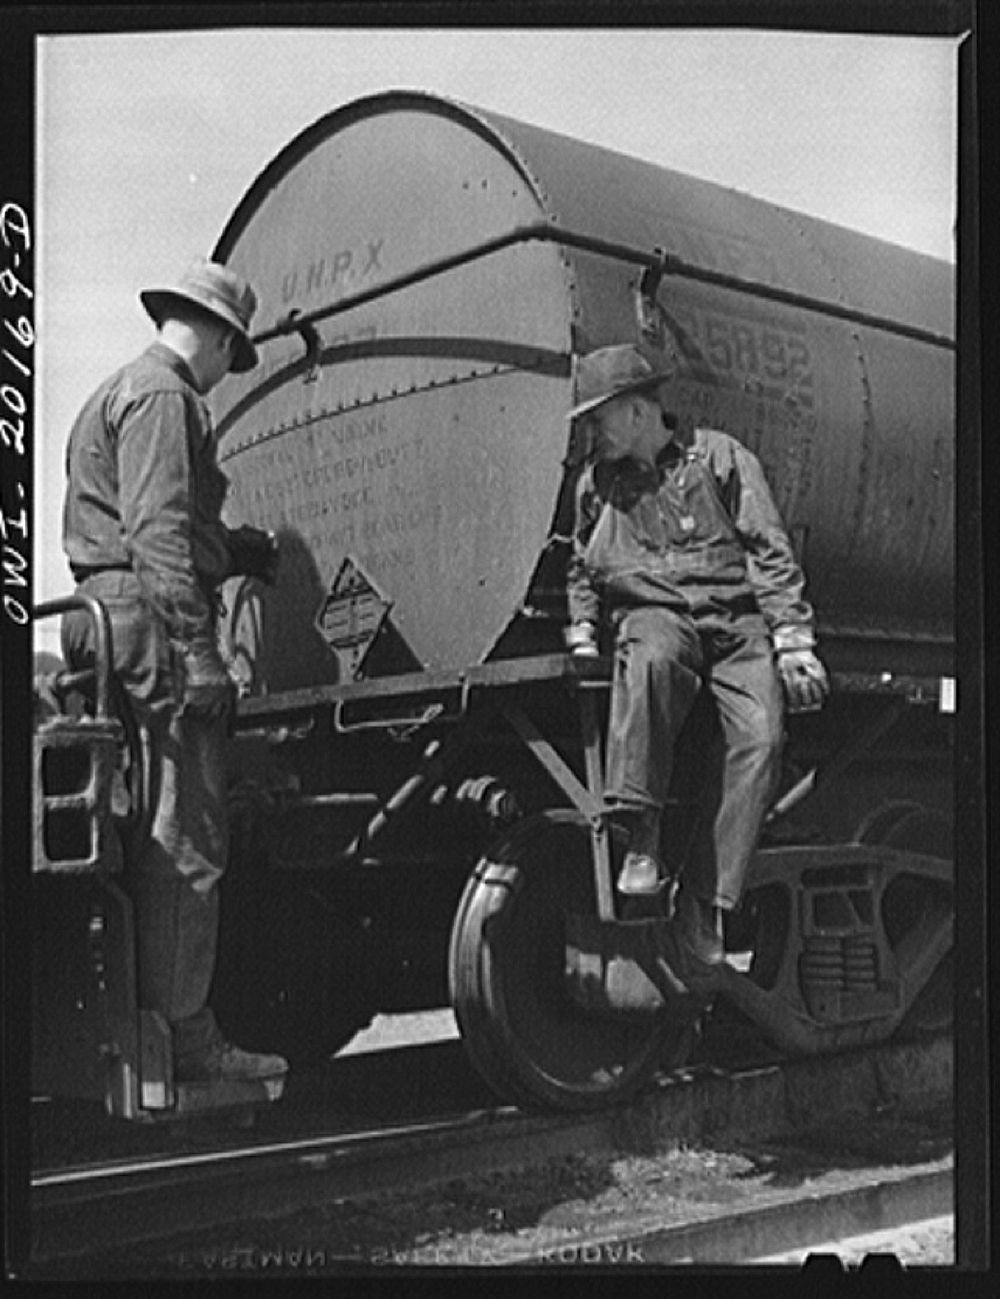 Amarillo, Texas. Atchison, Topeka and Santa Fe switchman